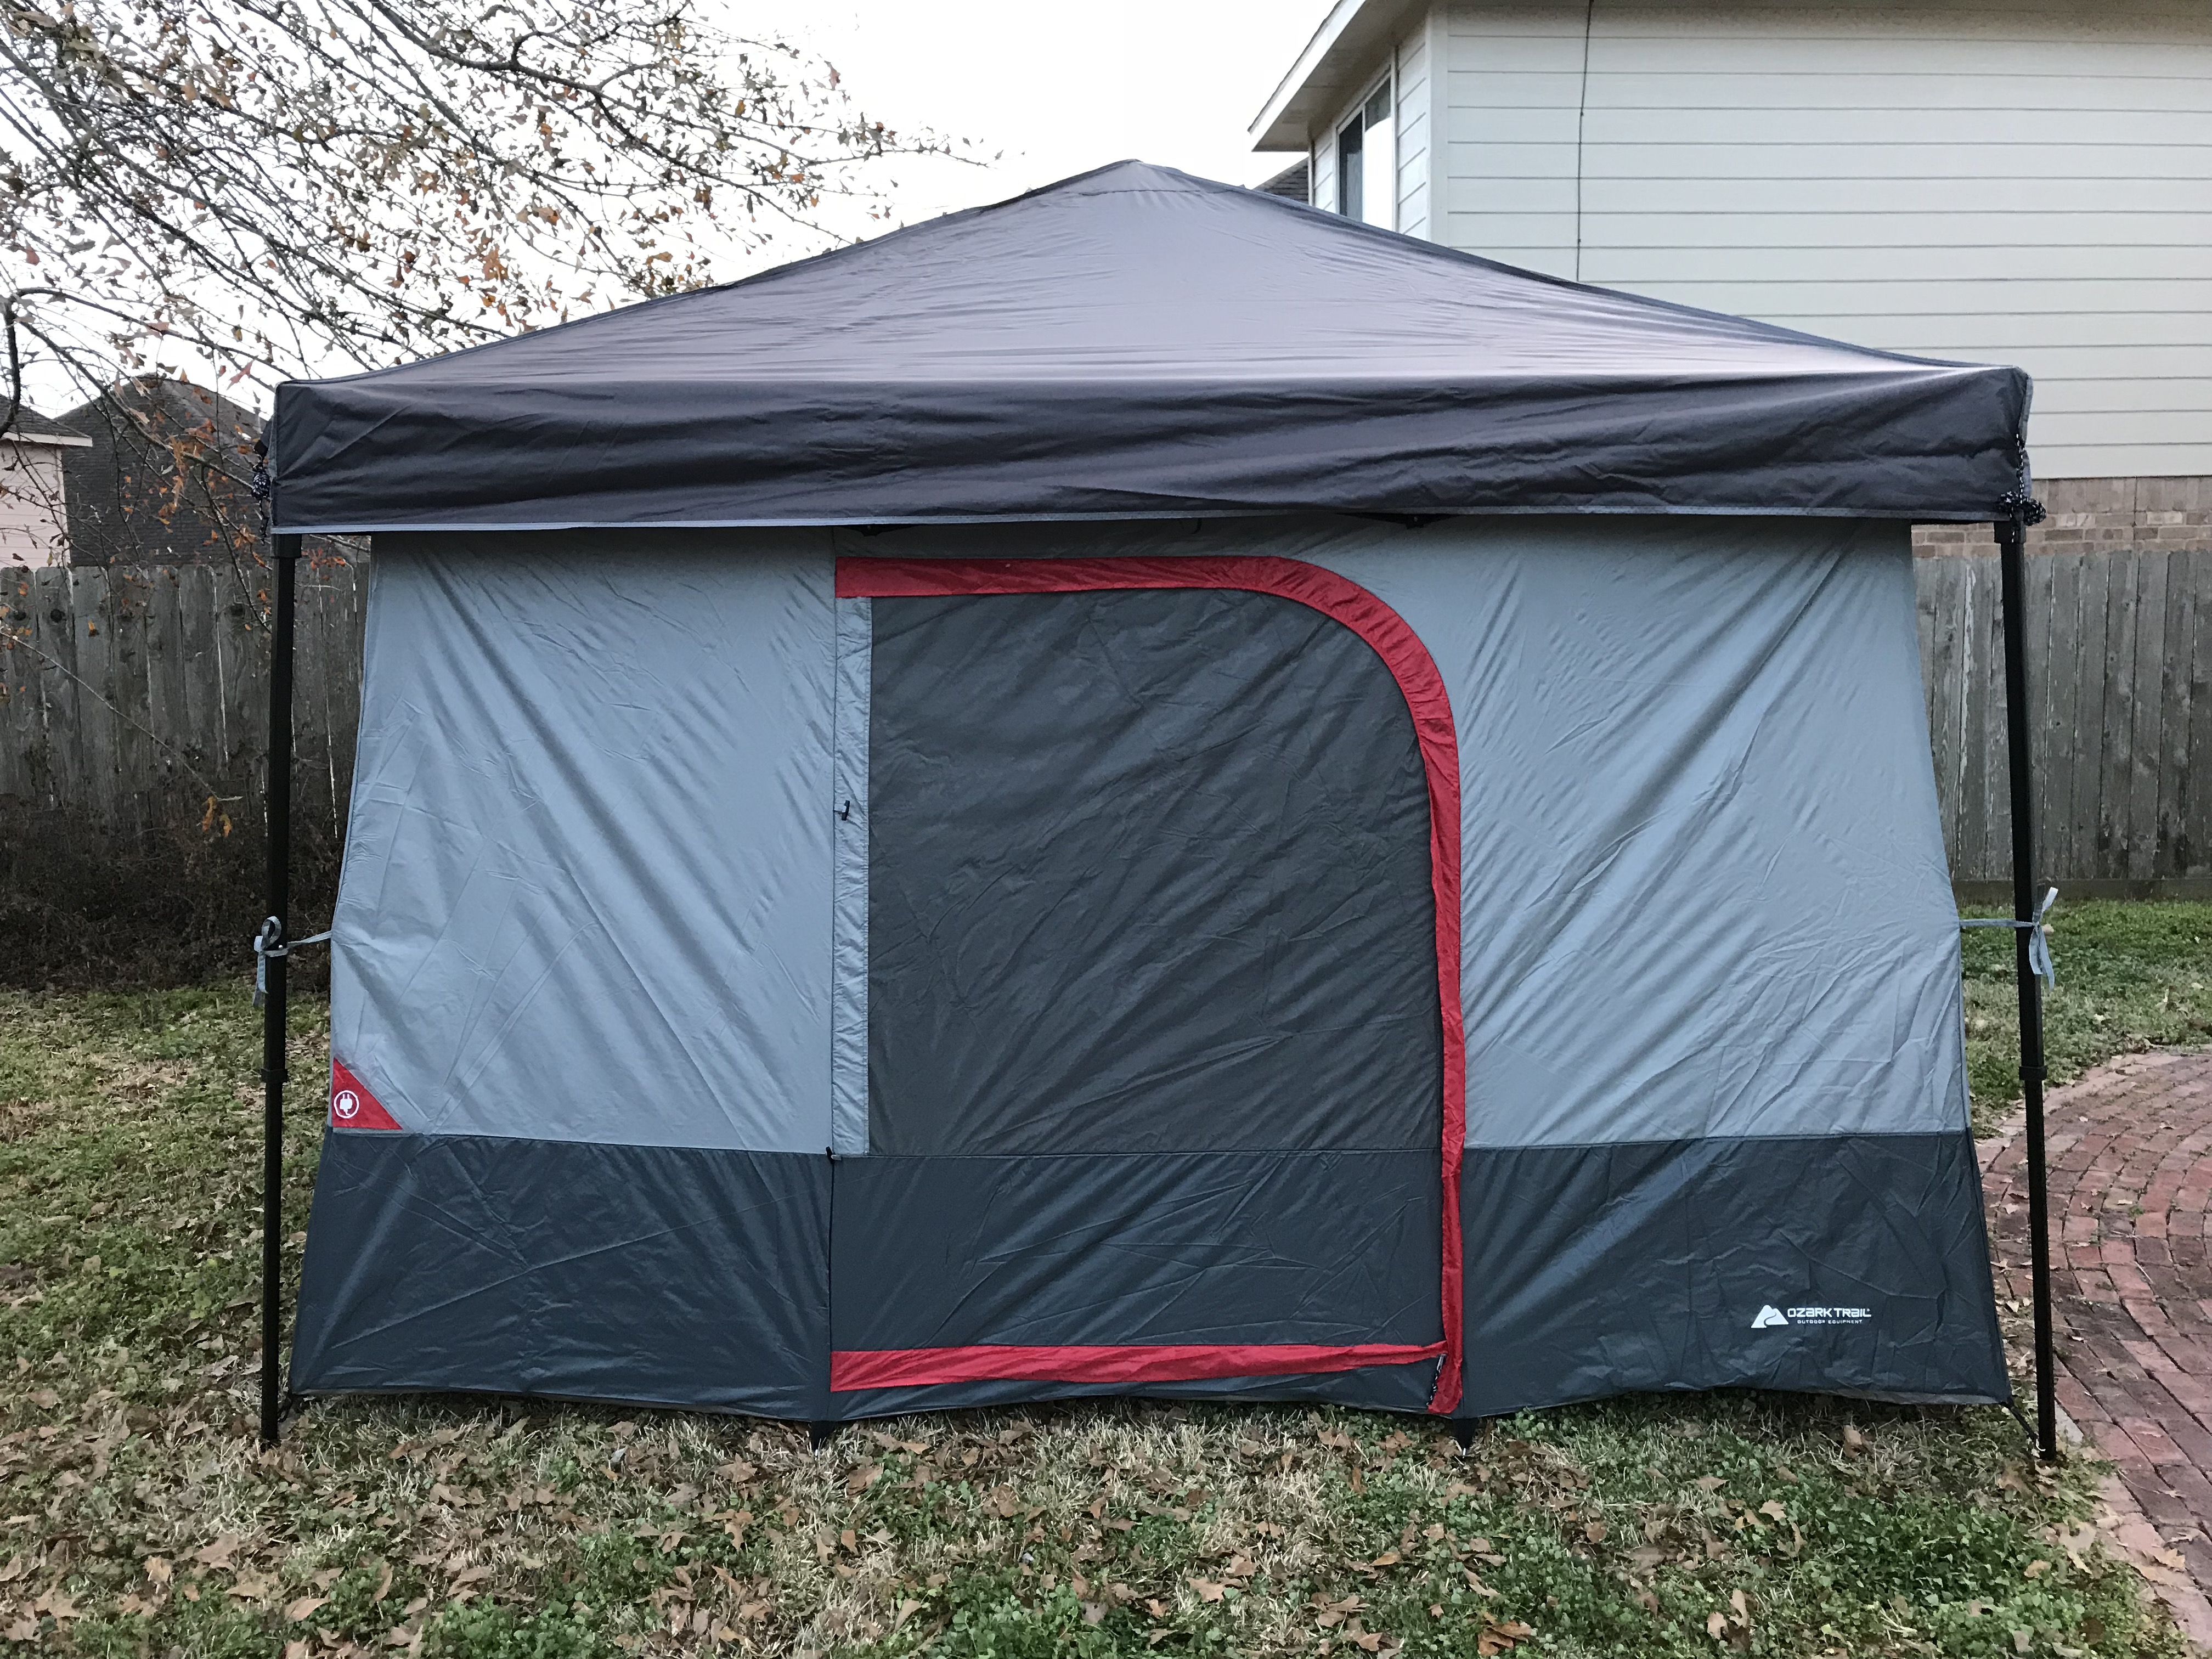 After doing some research I found a very affordable version of this tent u2014 the Ozark Trail ConnecTent. So I placed my order on Amazon and then waited with ... & My Ozark Trail ConnecTent u2013 Explore Texas